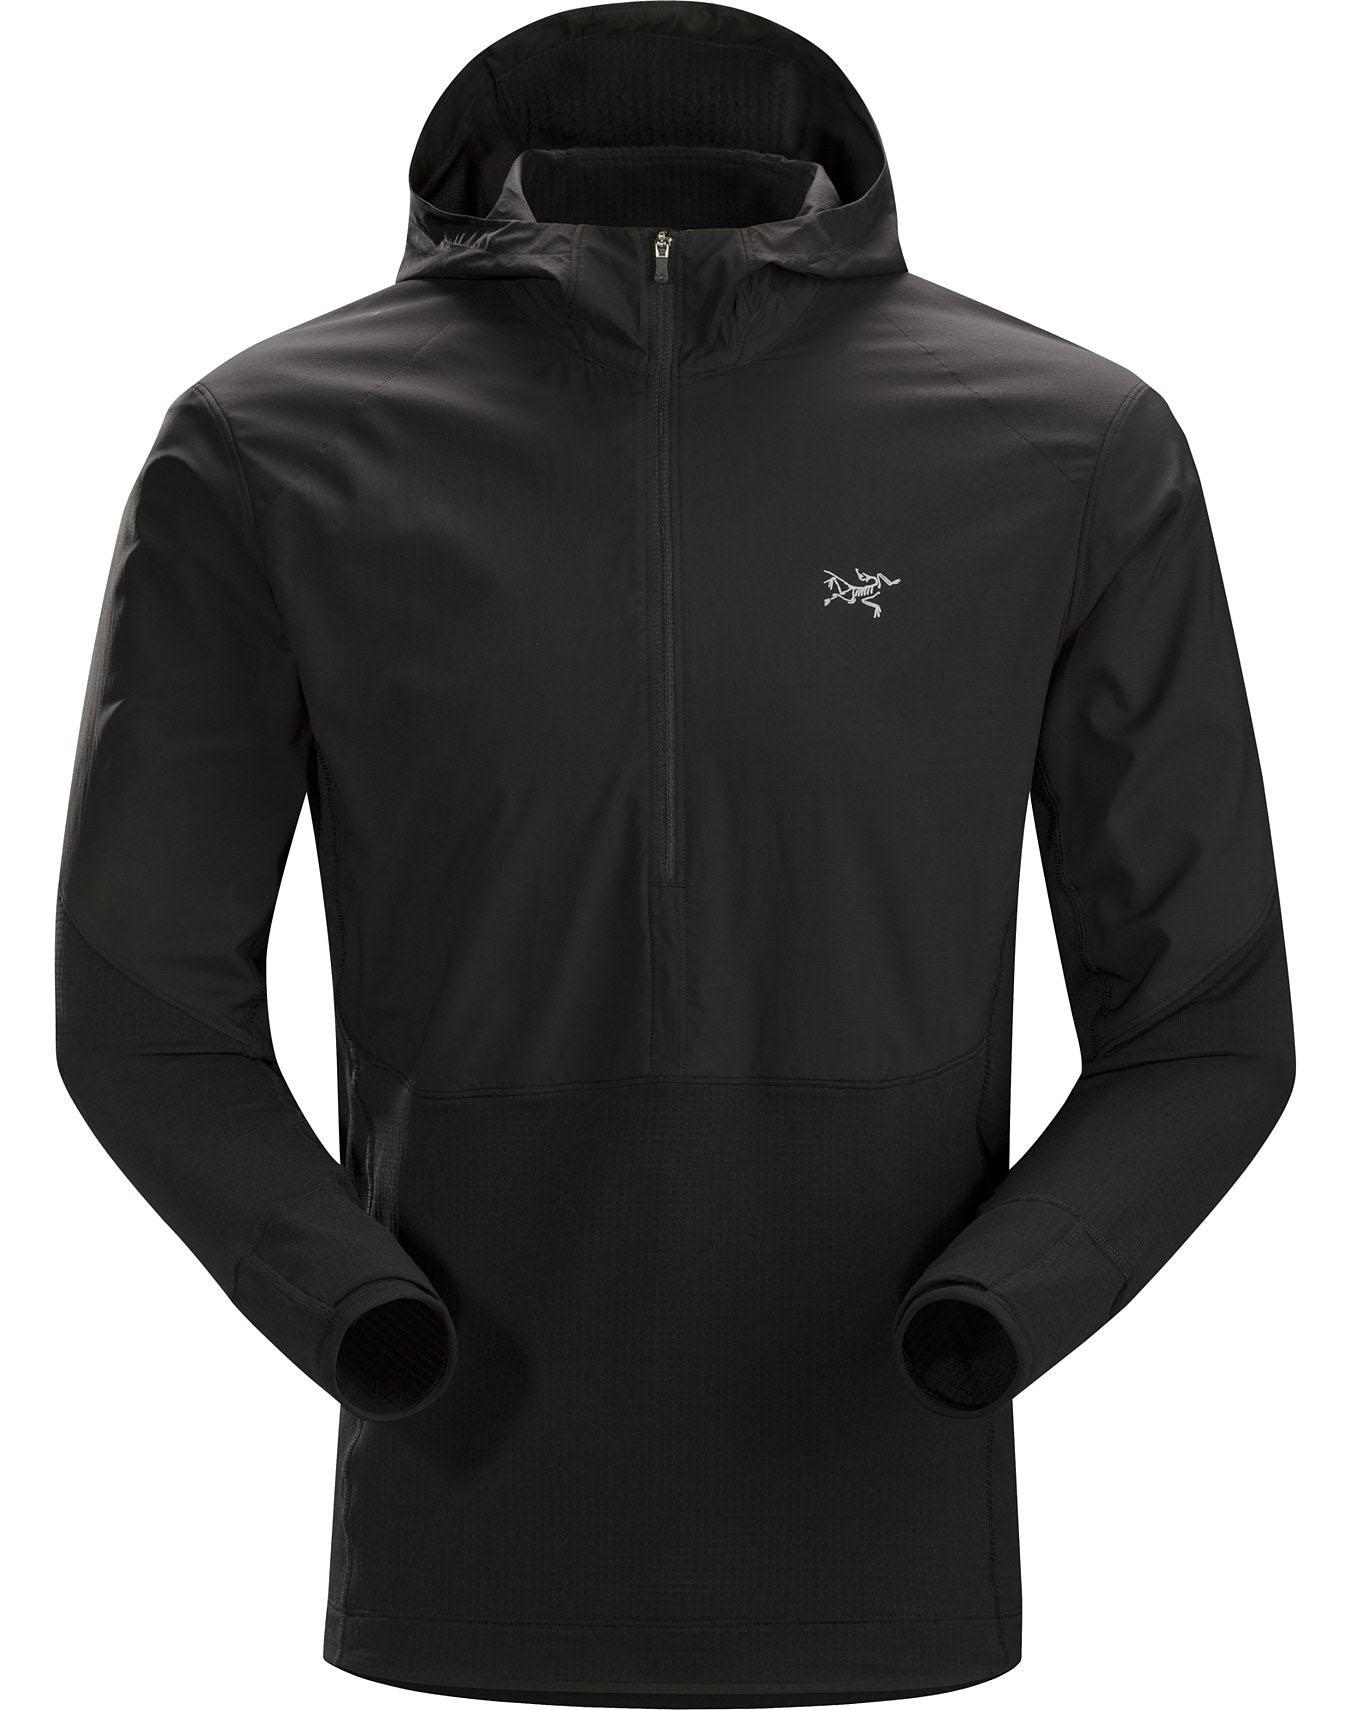 Arc'teryx Men's Aptin Zip Hoody in Black